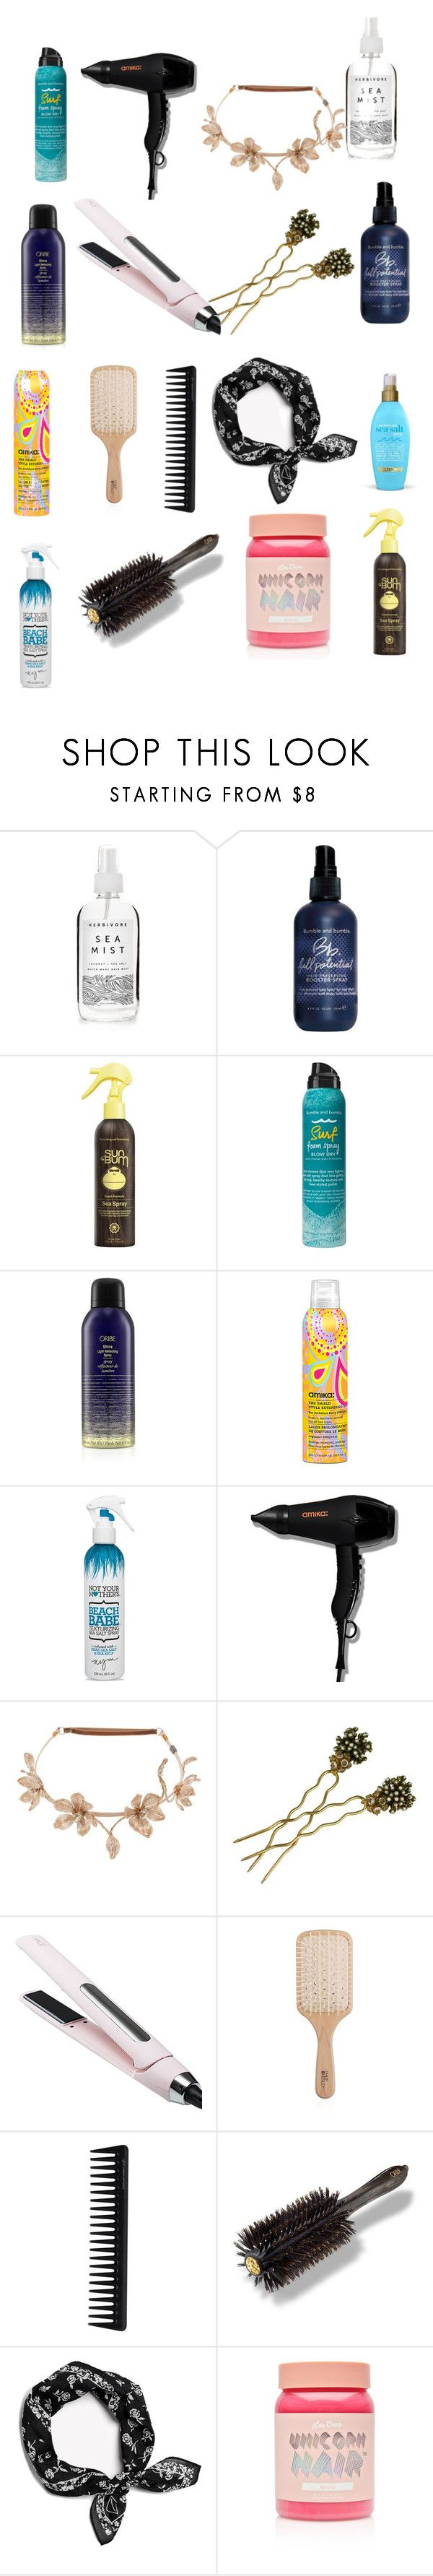 """hair means to be furiously happy"" by cecjones ❤ liked on Polyvore featuring A Weathered Penny, Bumble and bumble, Sun Bum, Oribe, amika, Forever 21, Colette Malouf, Countess Cis Zoltowska, L'ange and Philip Kingsley"